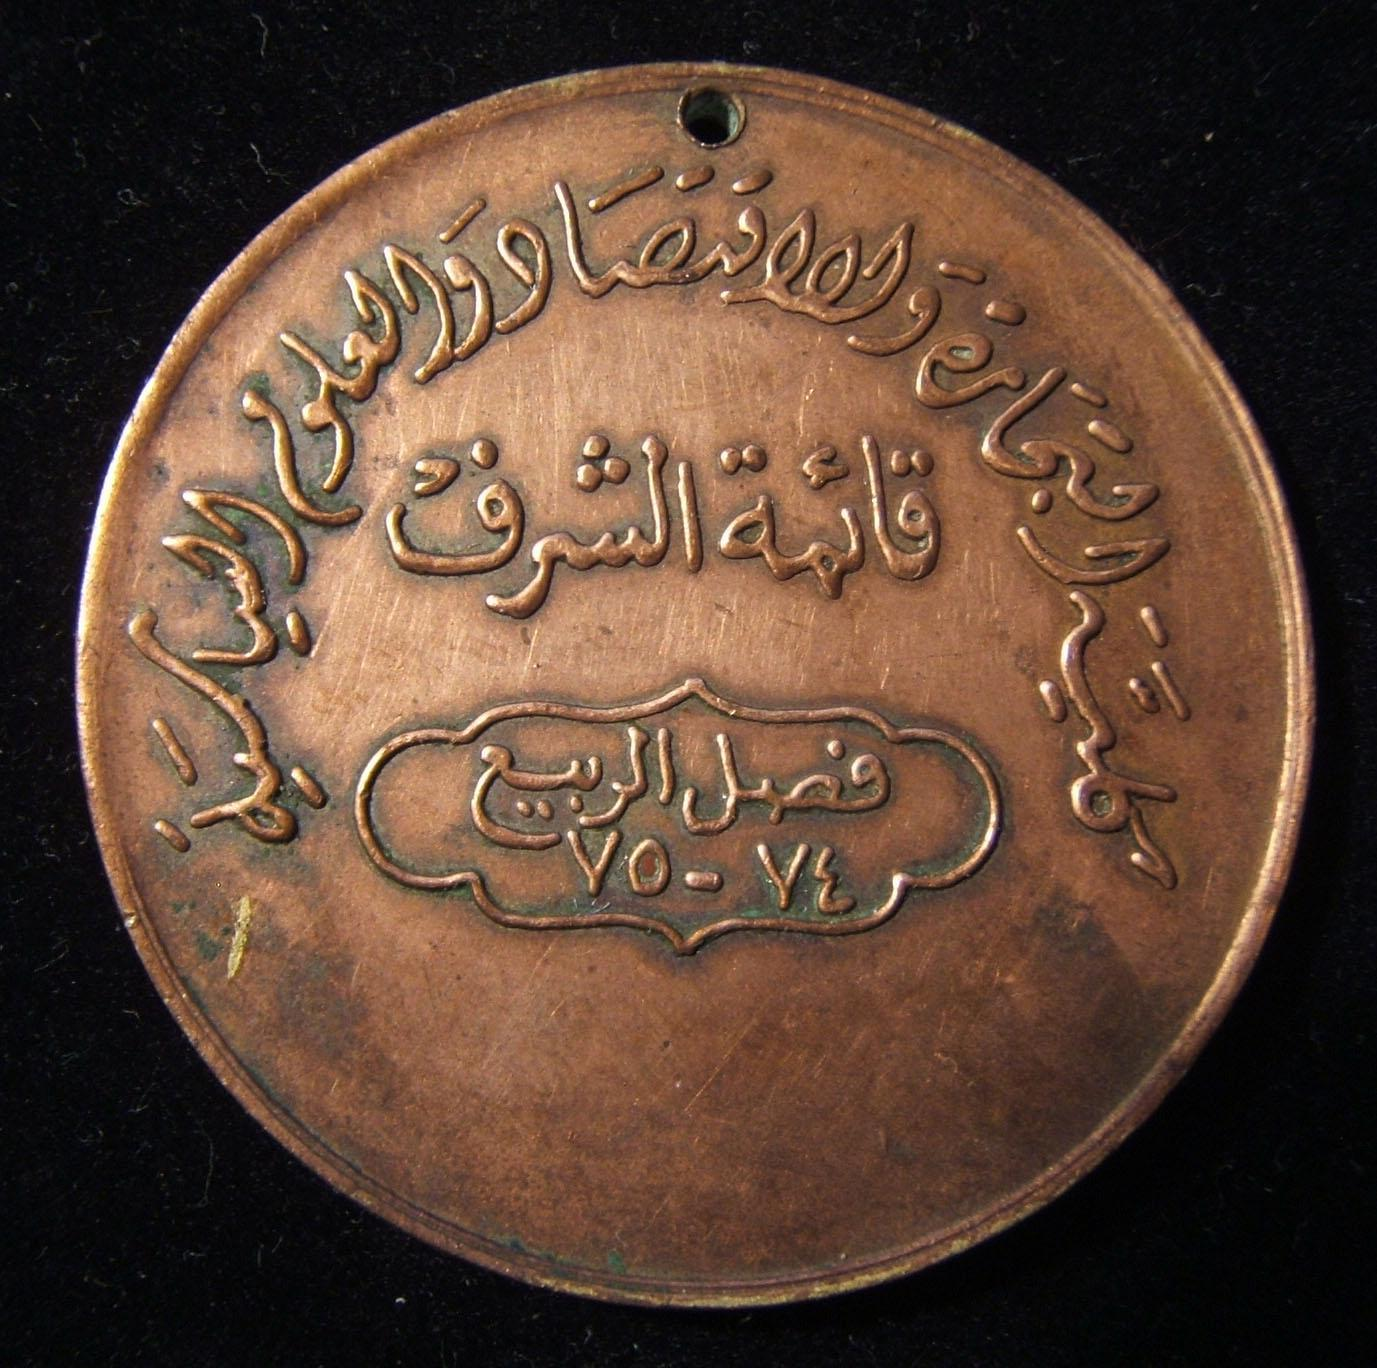 Jordan(?) - University honors medal: legend on obverse & reverse reads